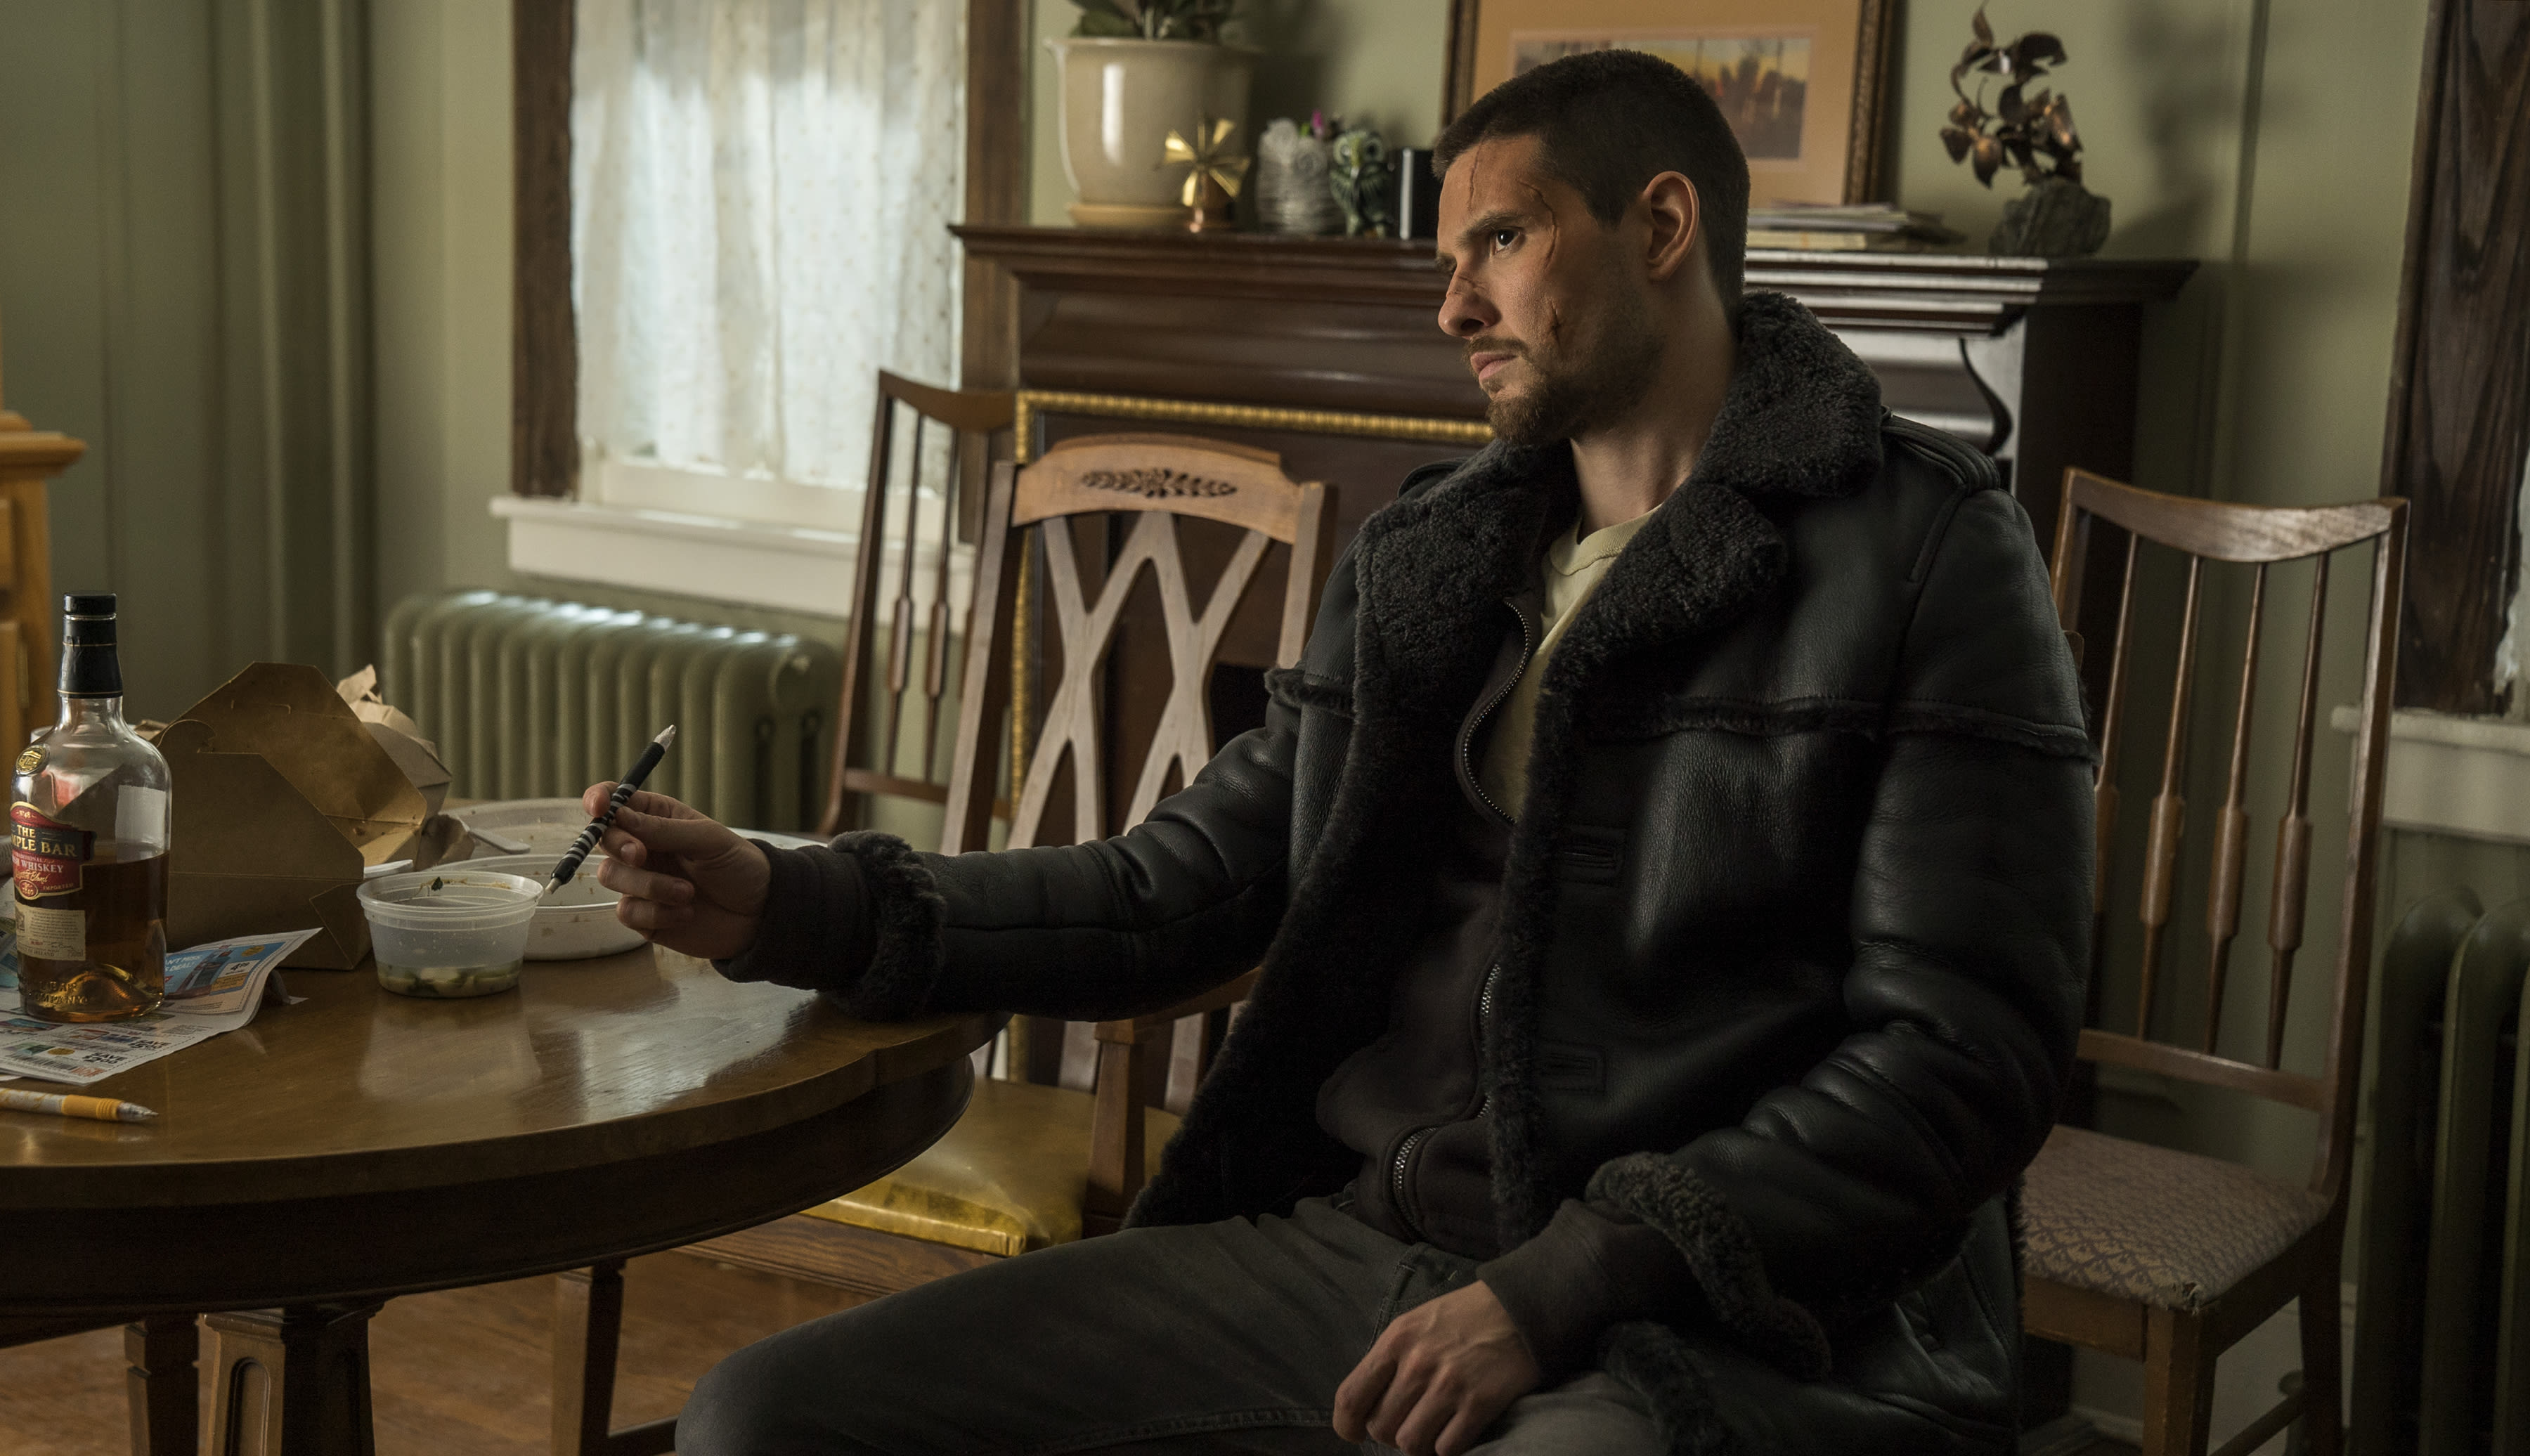 Netflix and Marvel Announce 'The Punisher' Season 2 Release